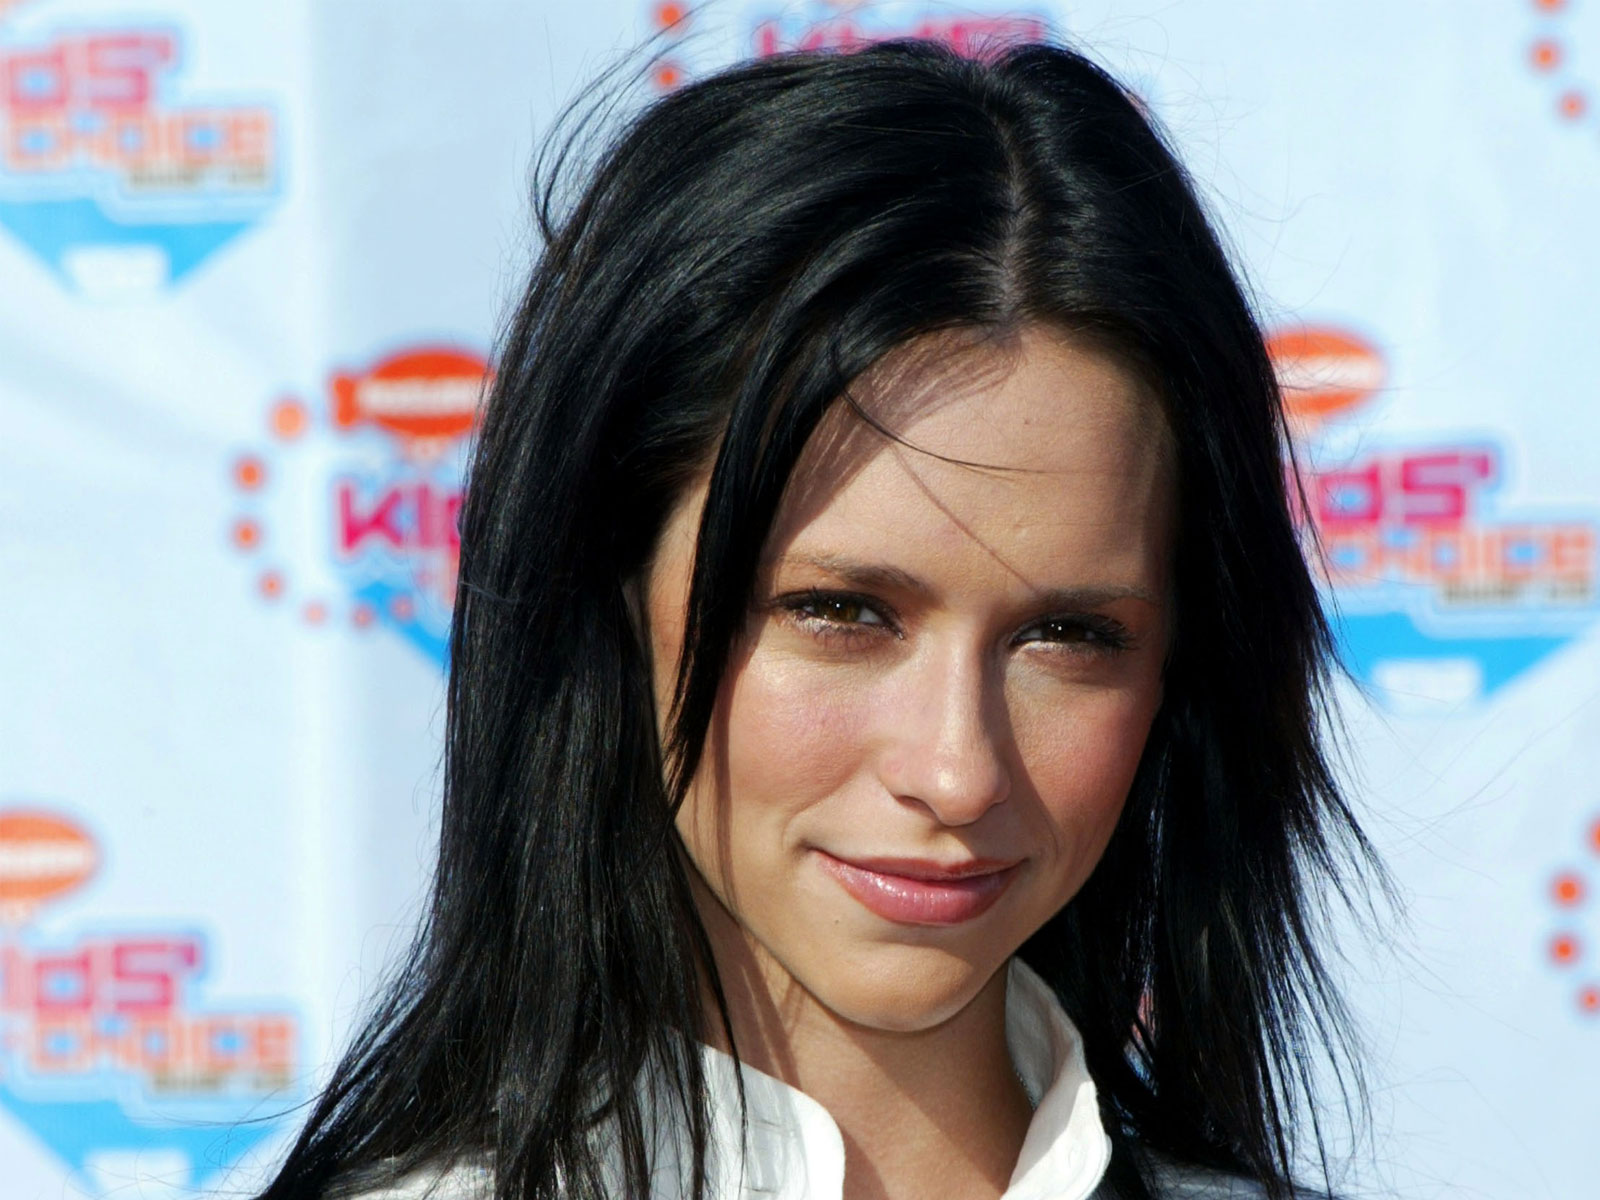 Sandra orlow facebook -  0 Jennifer Love Hewitt Jennifer Love Hewitt